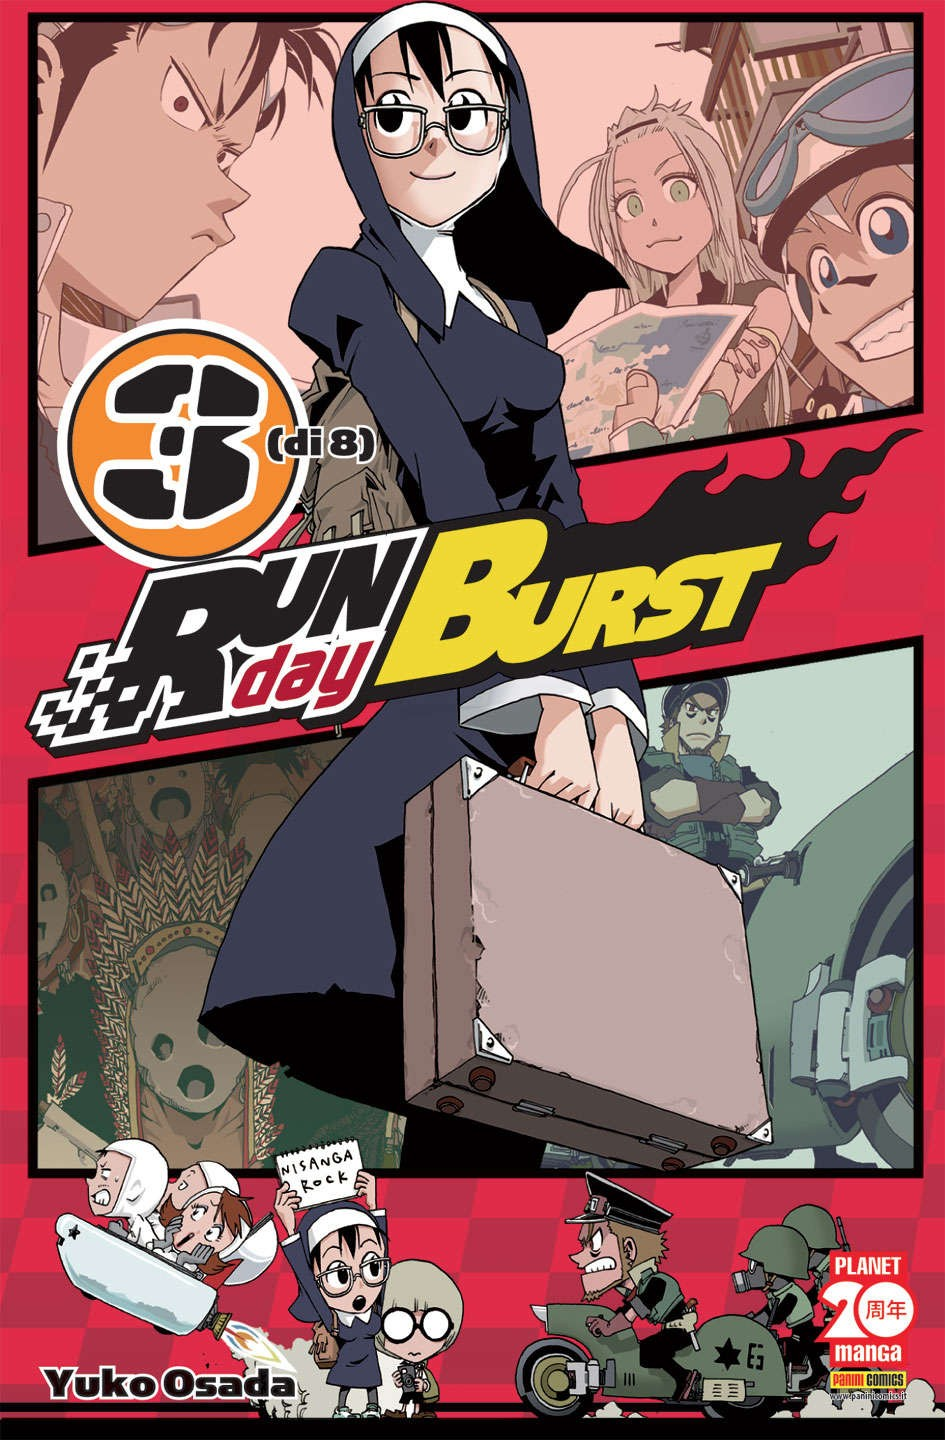 Run Day Burst - N° 3 - Run Day Burst - Planet Manga